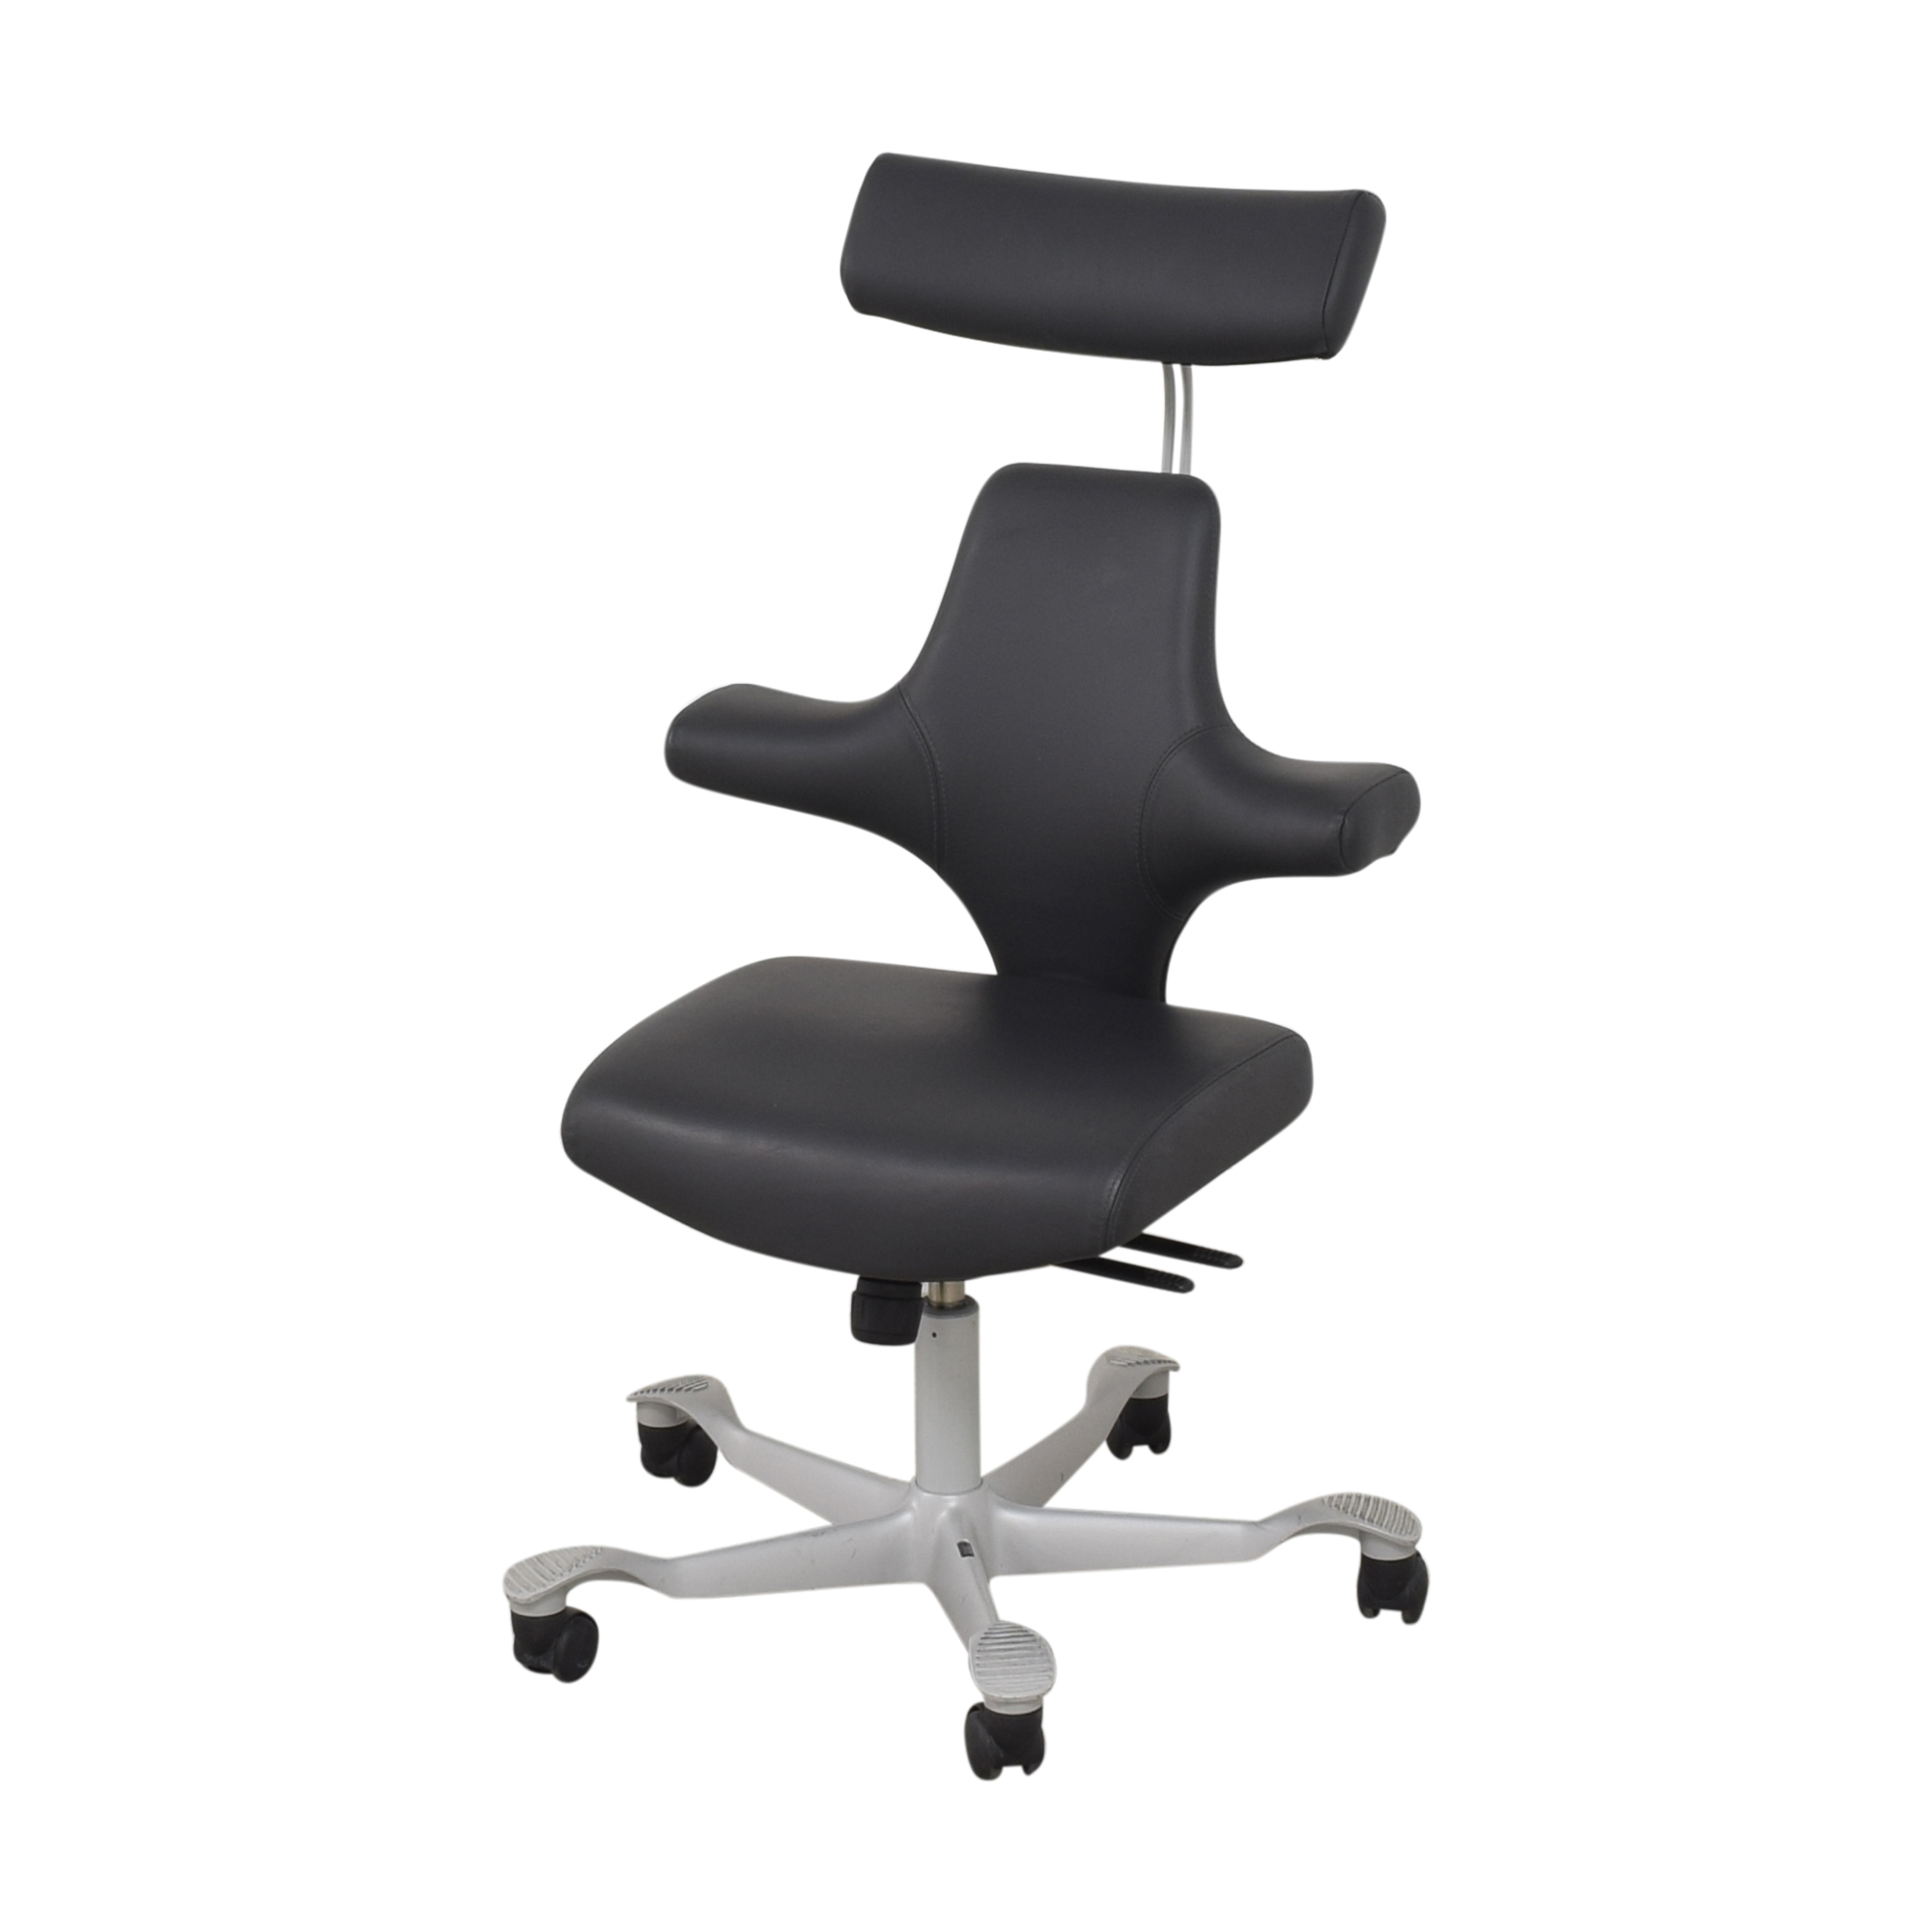 HAG HAG Capisco Adjustable Swivel Chair price